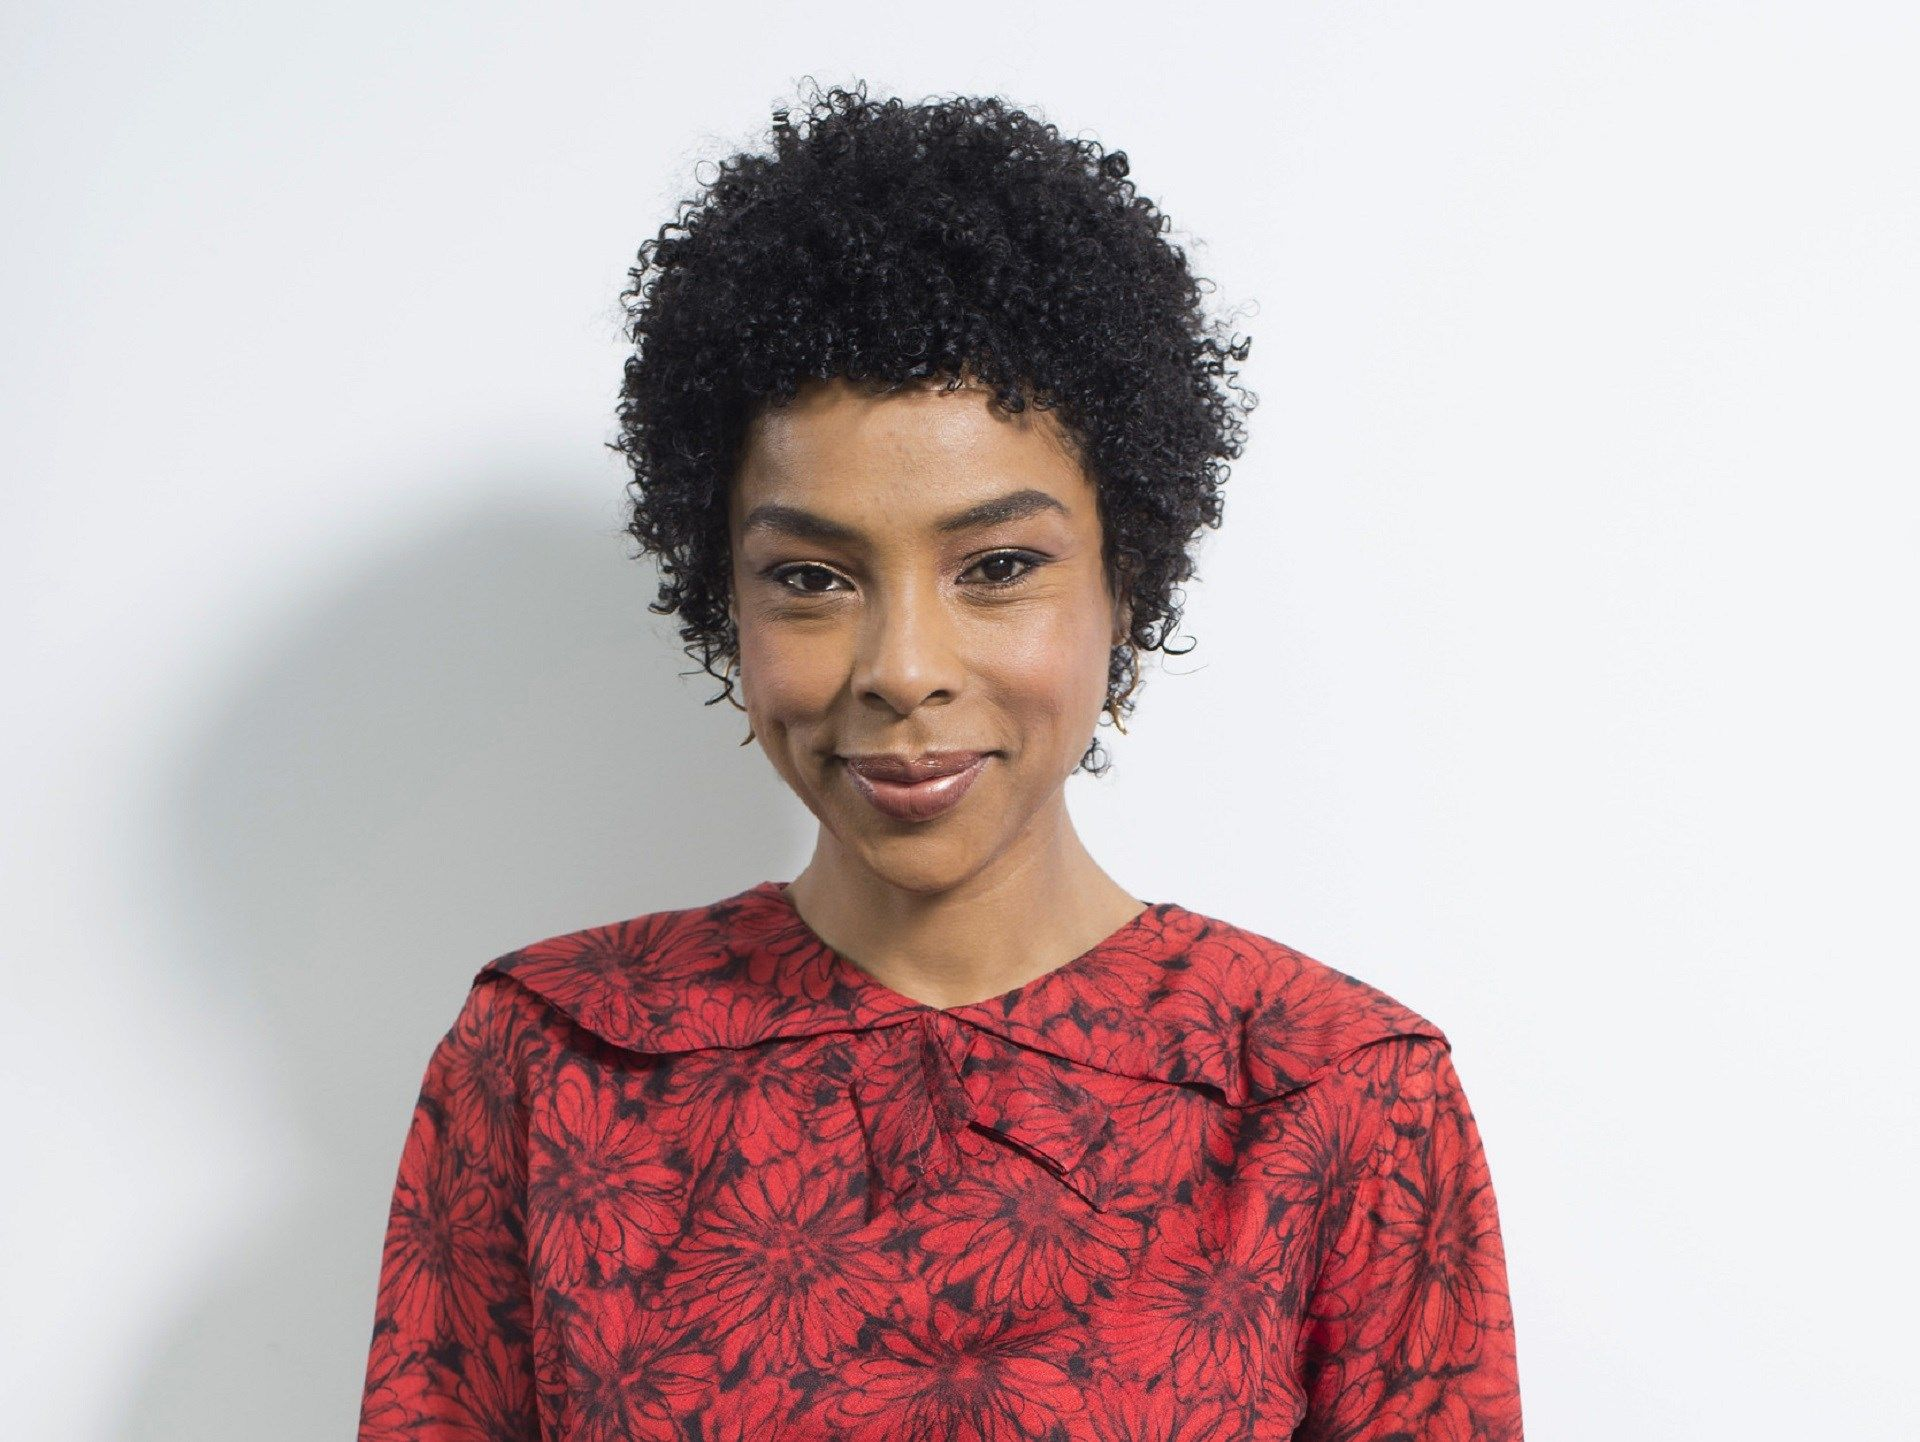 Wallpapers Digital Beauty: Sophie Okonedo - Wallpaper Actress